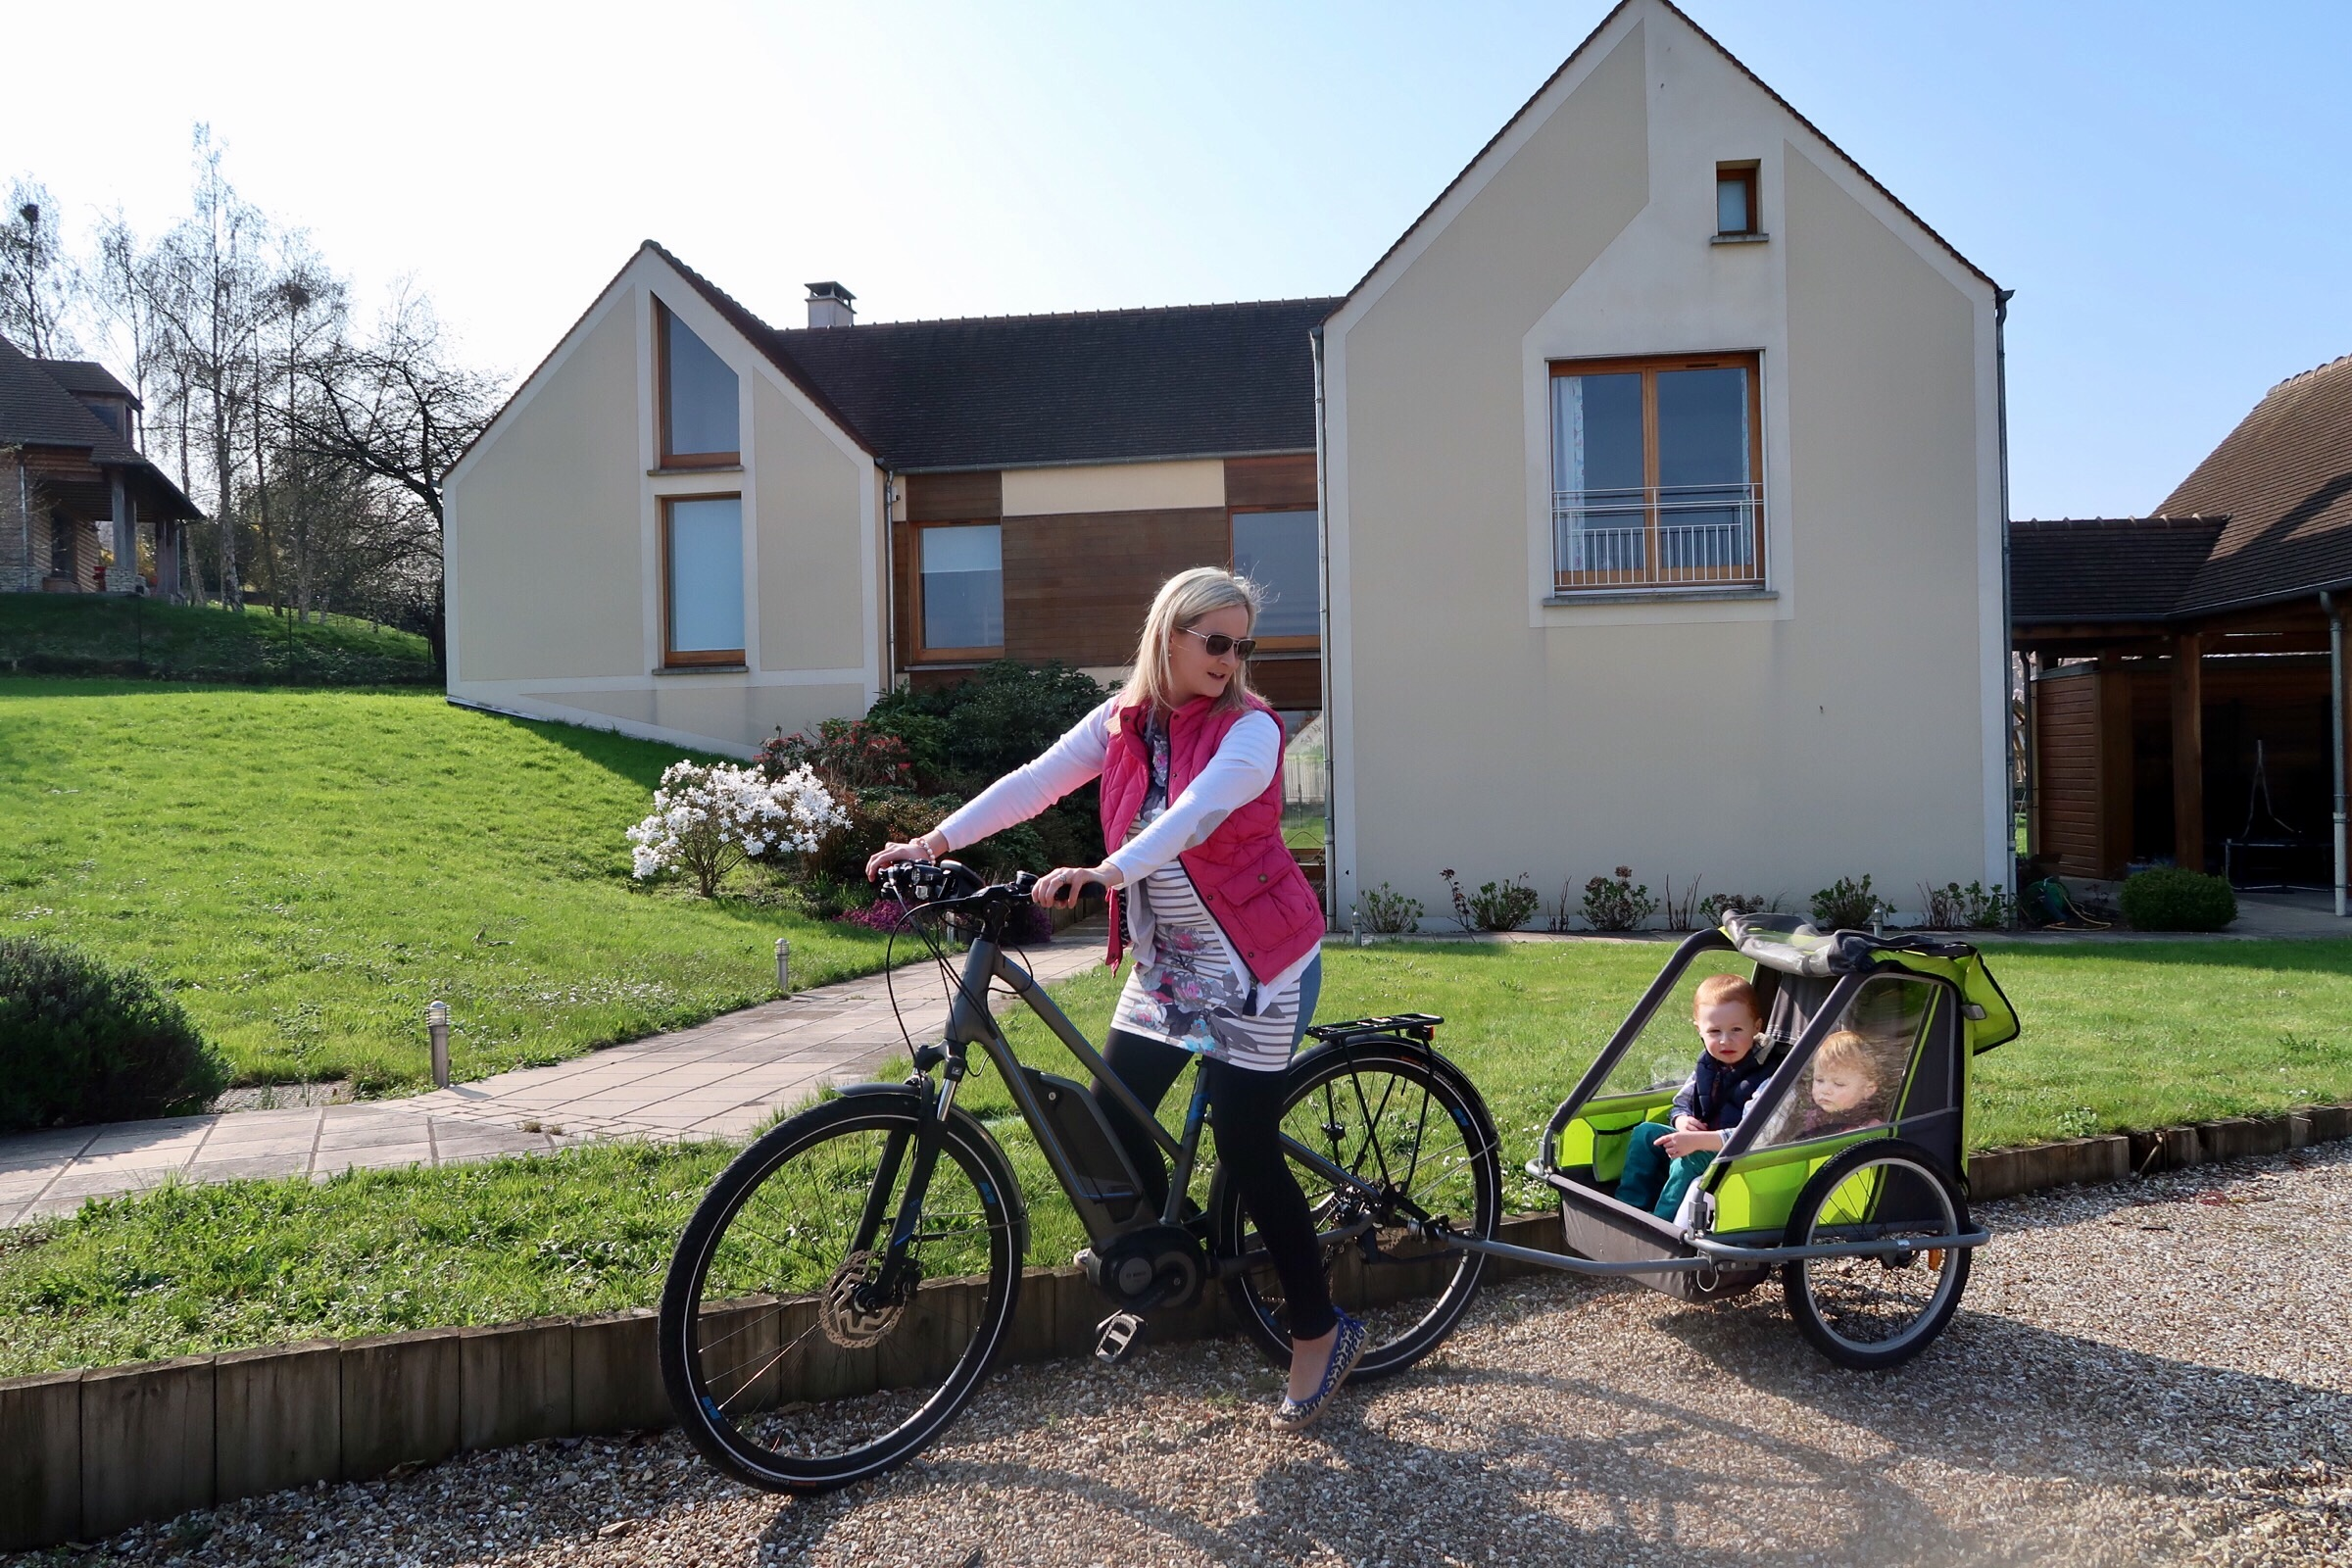 """School run (photo op - I do wear a helmet when riding) - I was actually called """"Maman Sportive"""" by another school parent - knowing myself, I chuckle inside at how ironic this is!!!"""